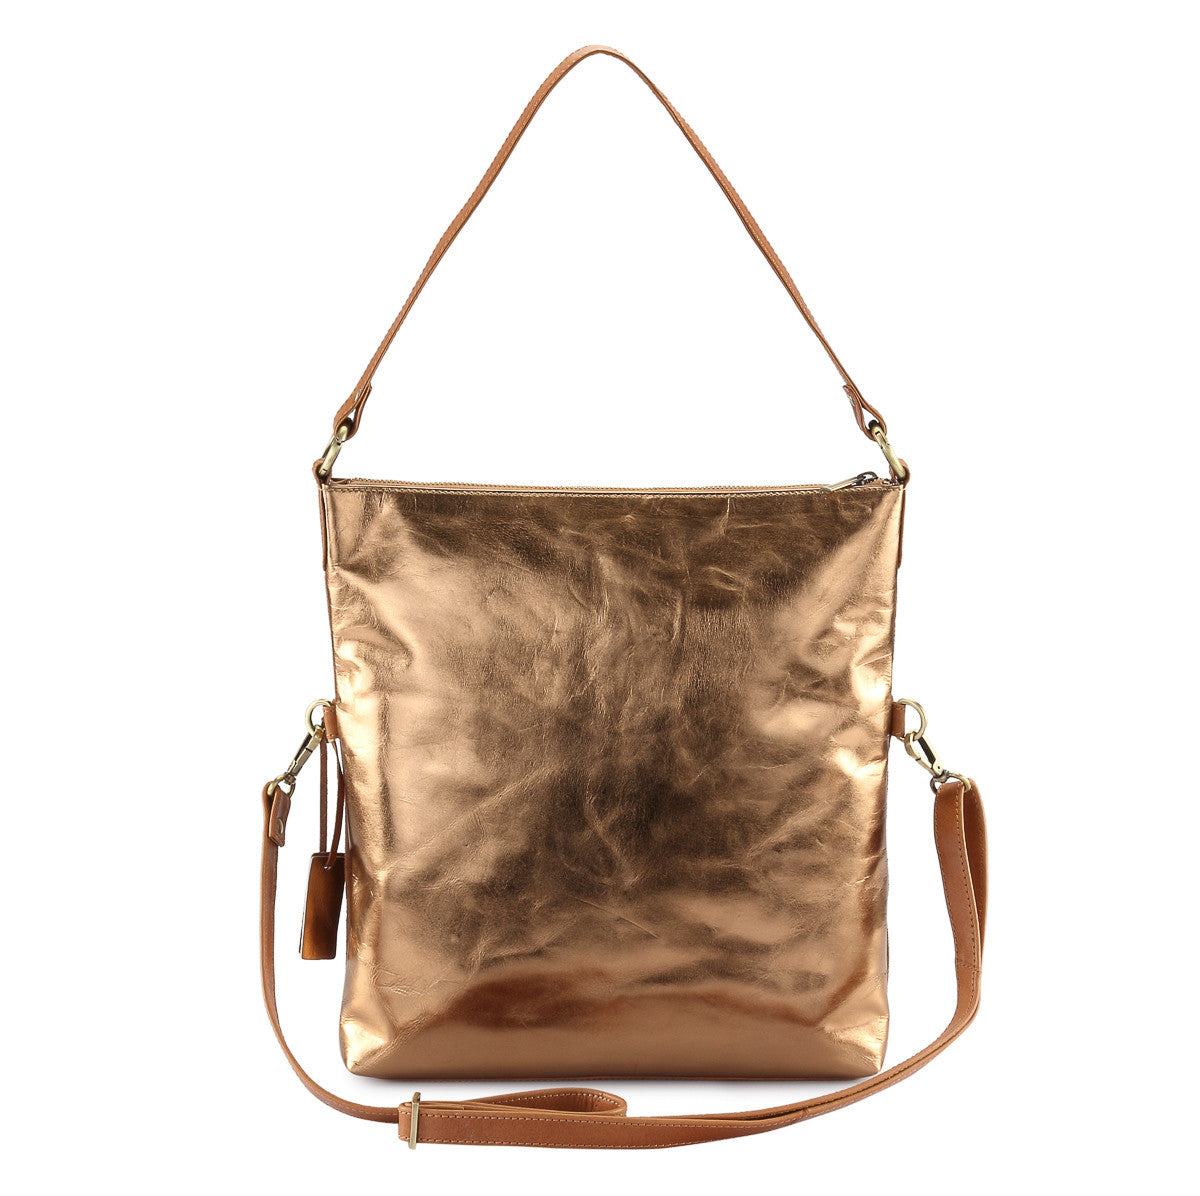 Metallic Leather 4 way back pack messenger clutch bag #LB31 copper